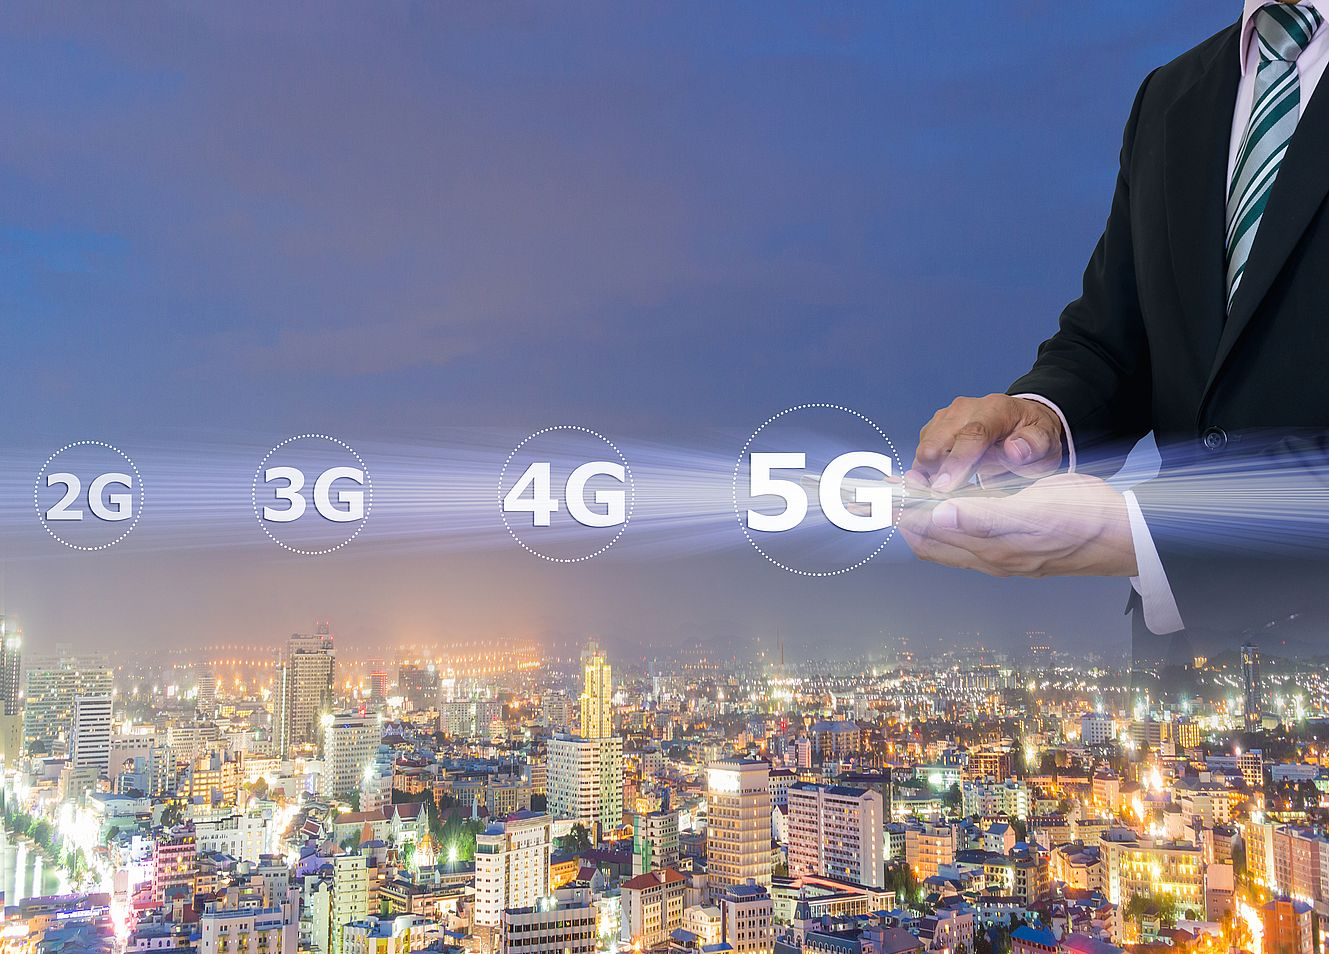 Businessmen hold a smartphone with digital pattern to view social data 5G networking concept.